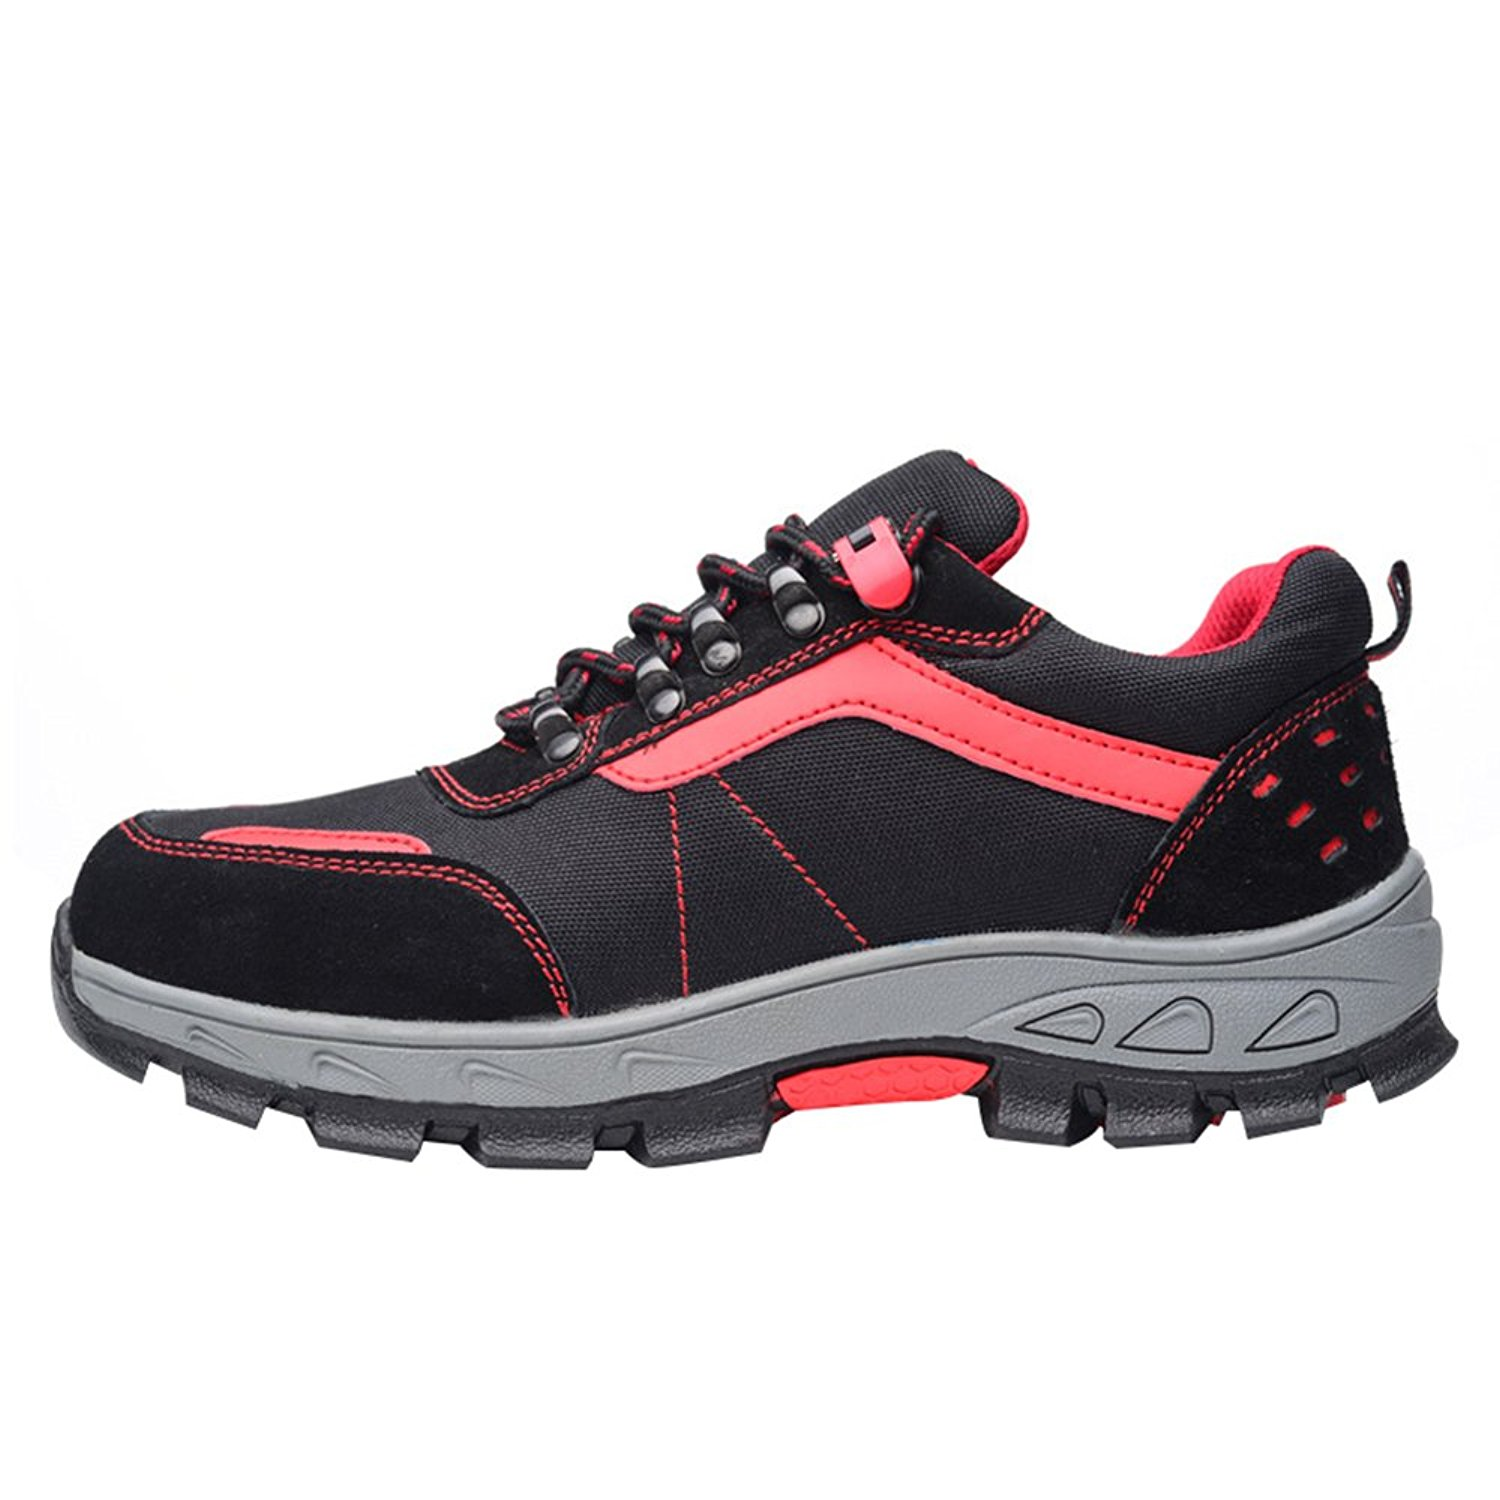 1321687b452 Get Quotations · Optimal Women's Safety Shoes Work Shoes Comp Steel Toe  Shoes